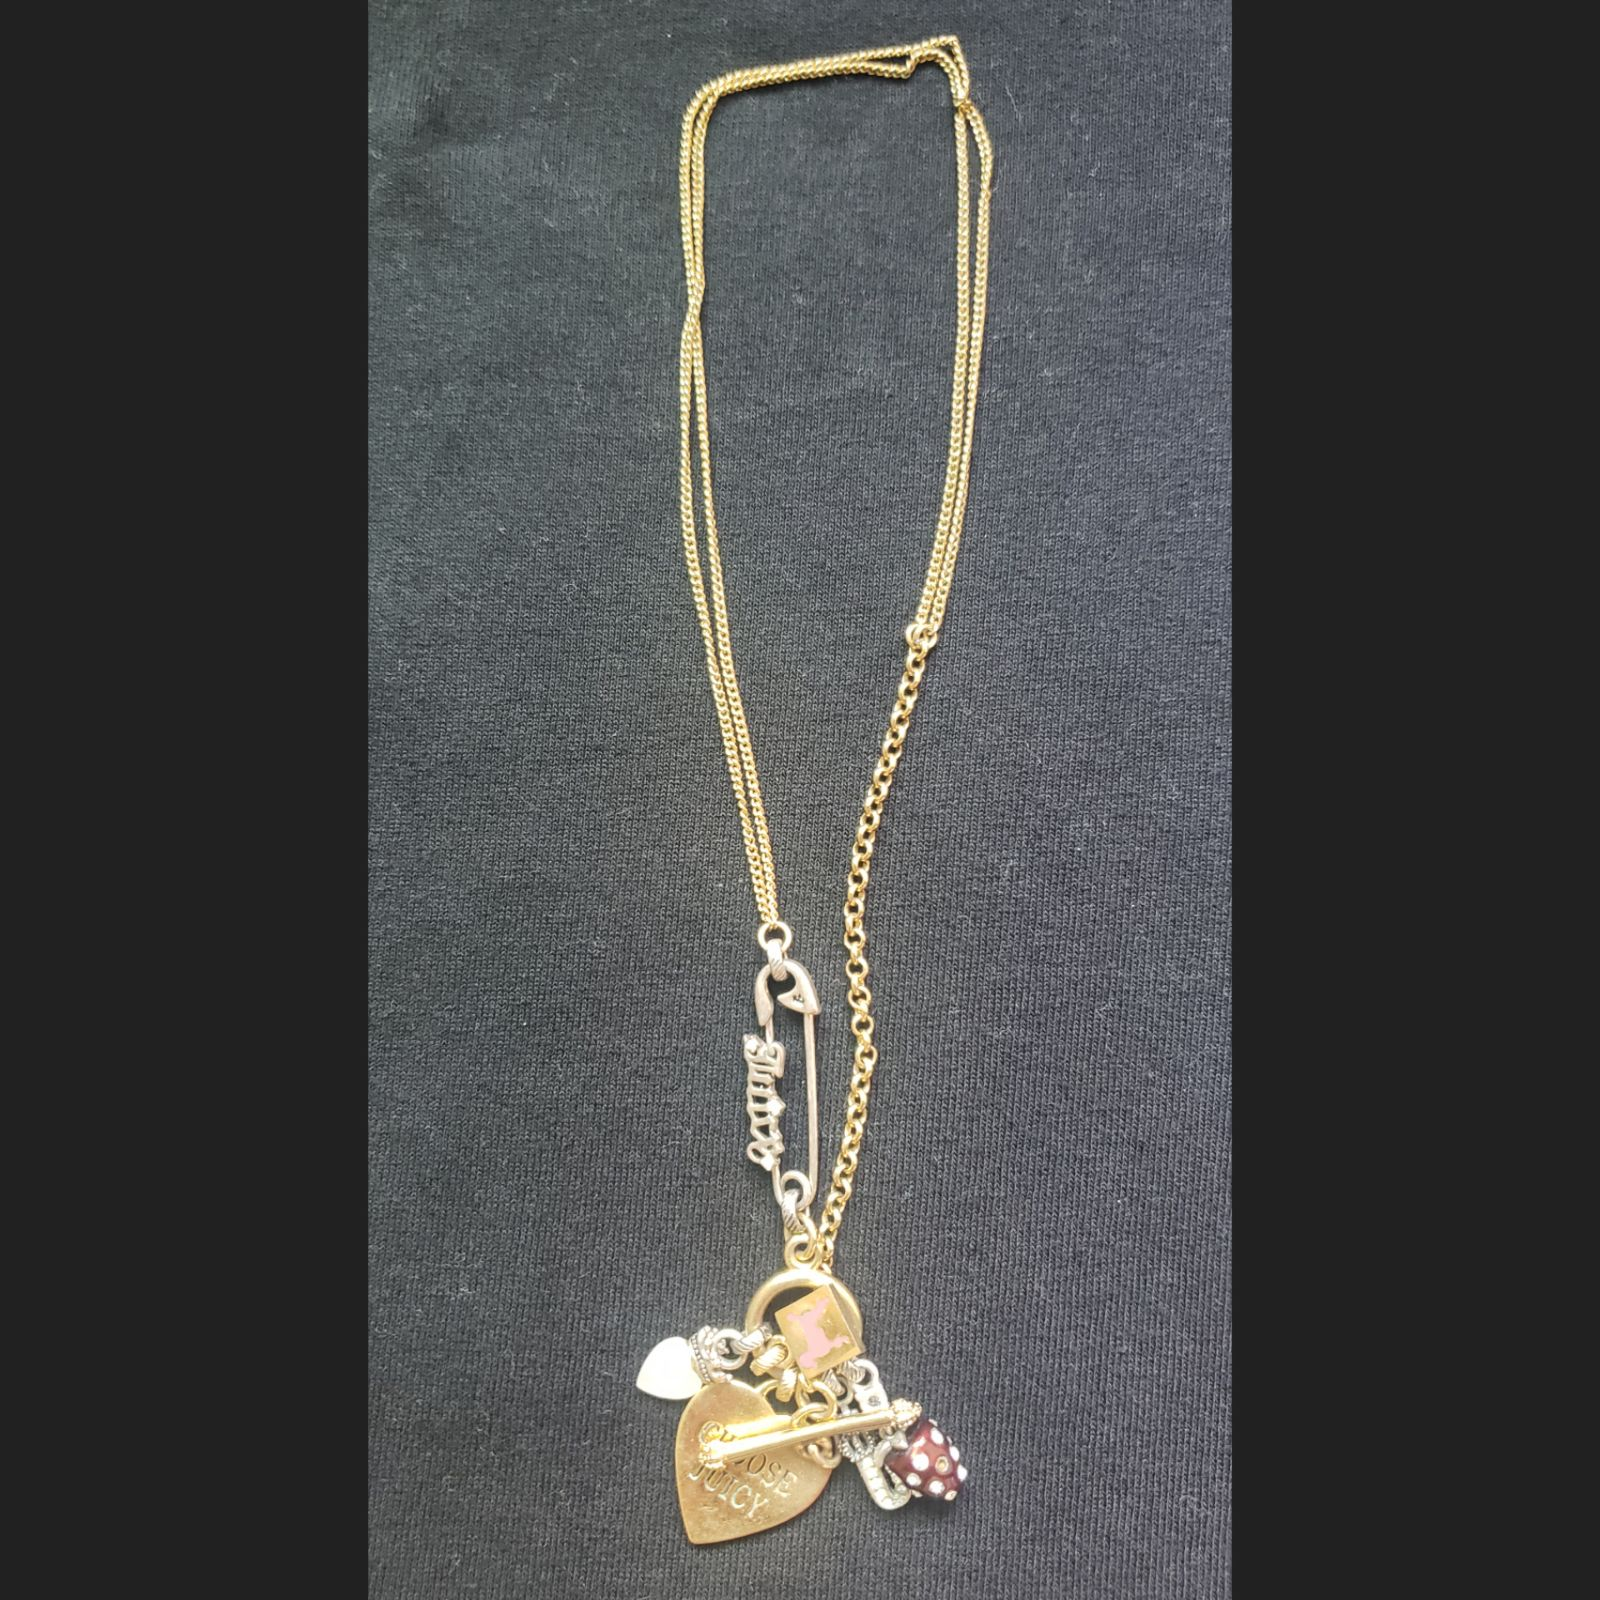 Juicy Couture Mini Charm Necklace